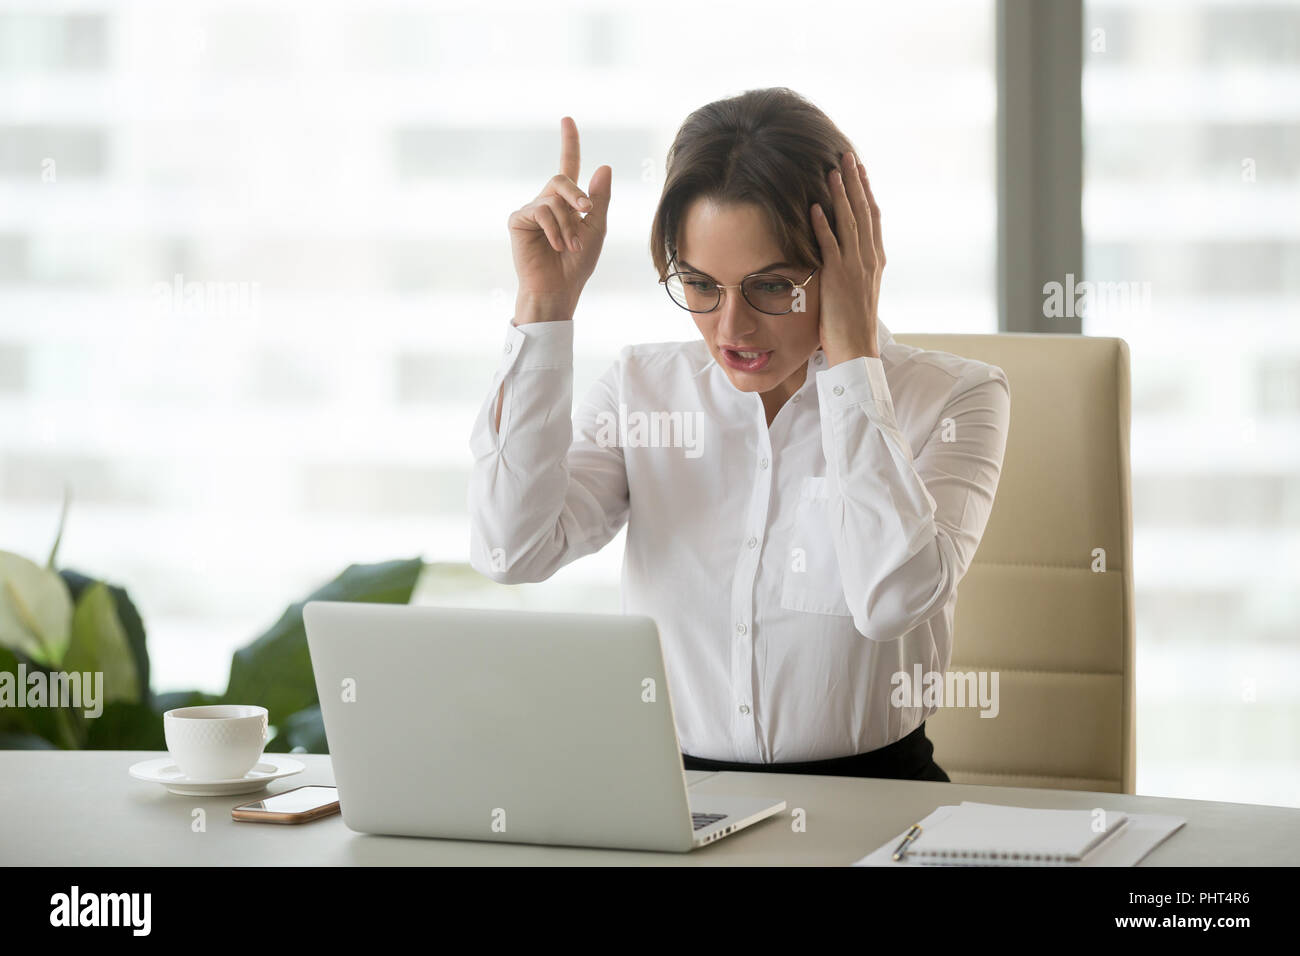 Excited businesswoman got new idea or business solution at work - Stock Image